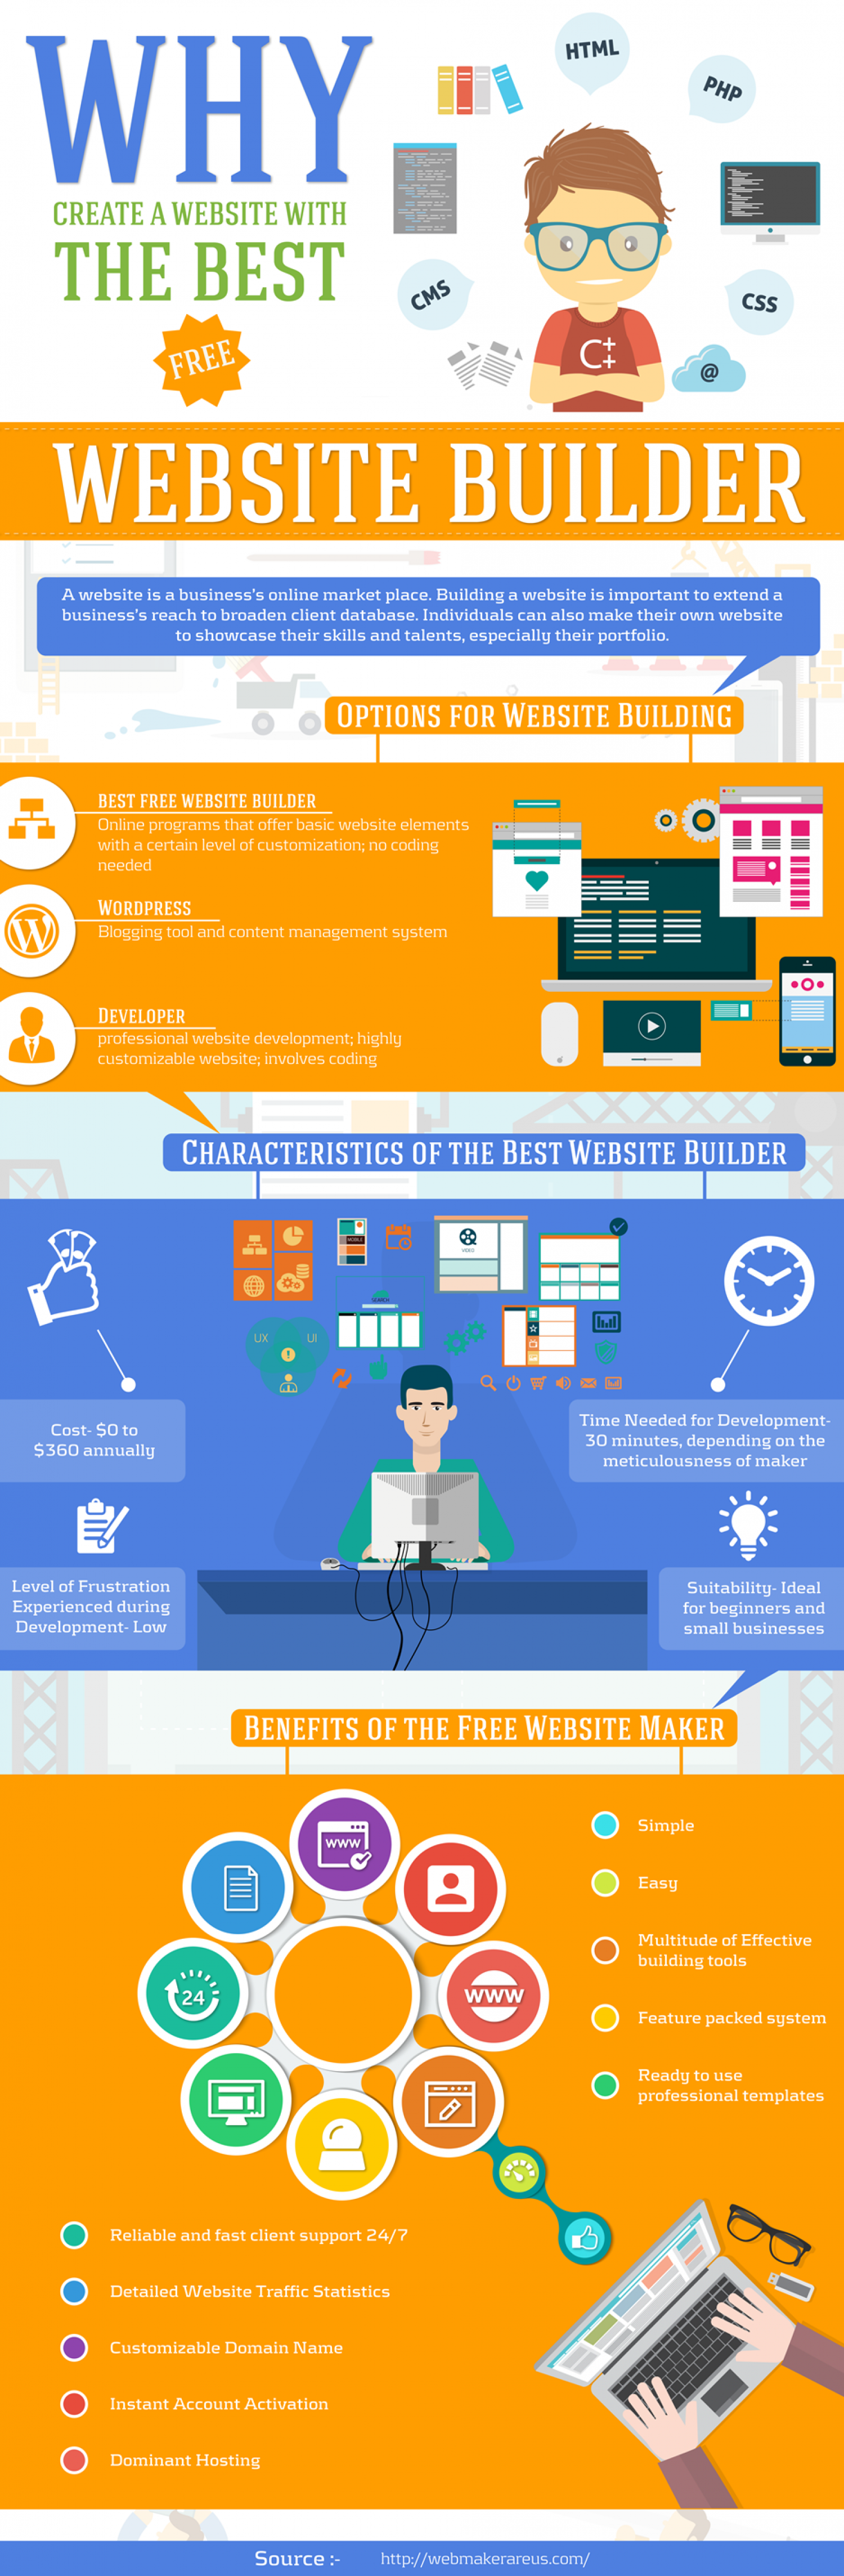 Best free website builder Infographic